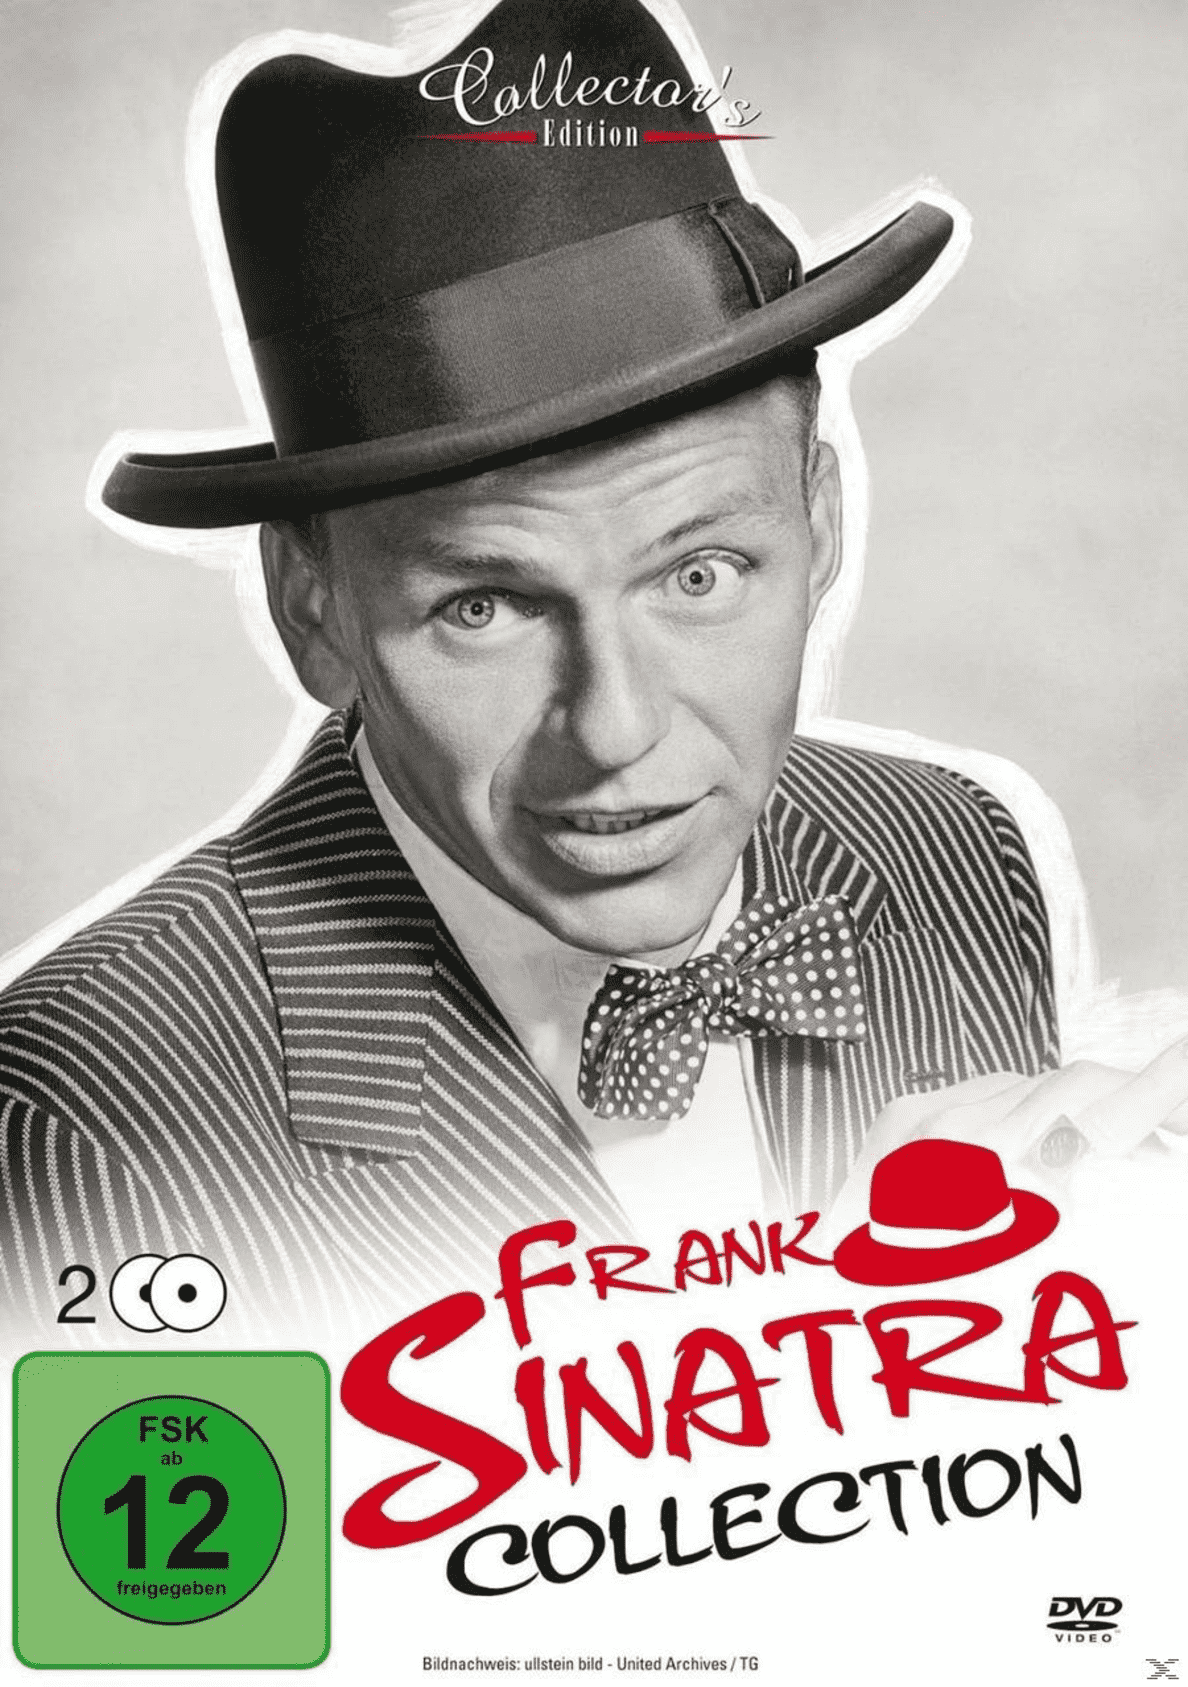 Frank Sinatra Collection auf DVD